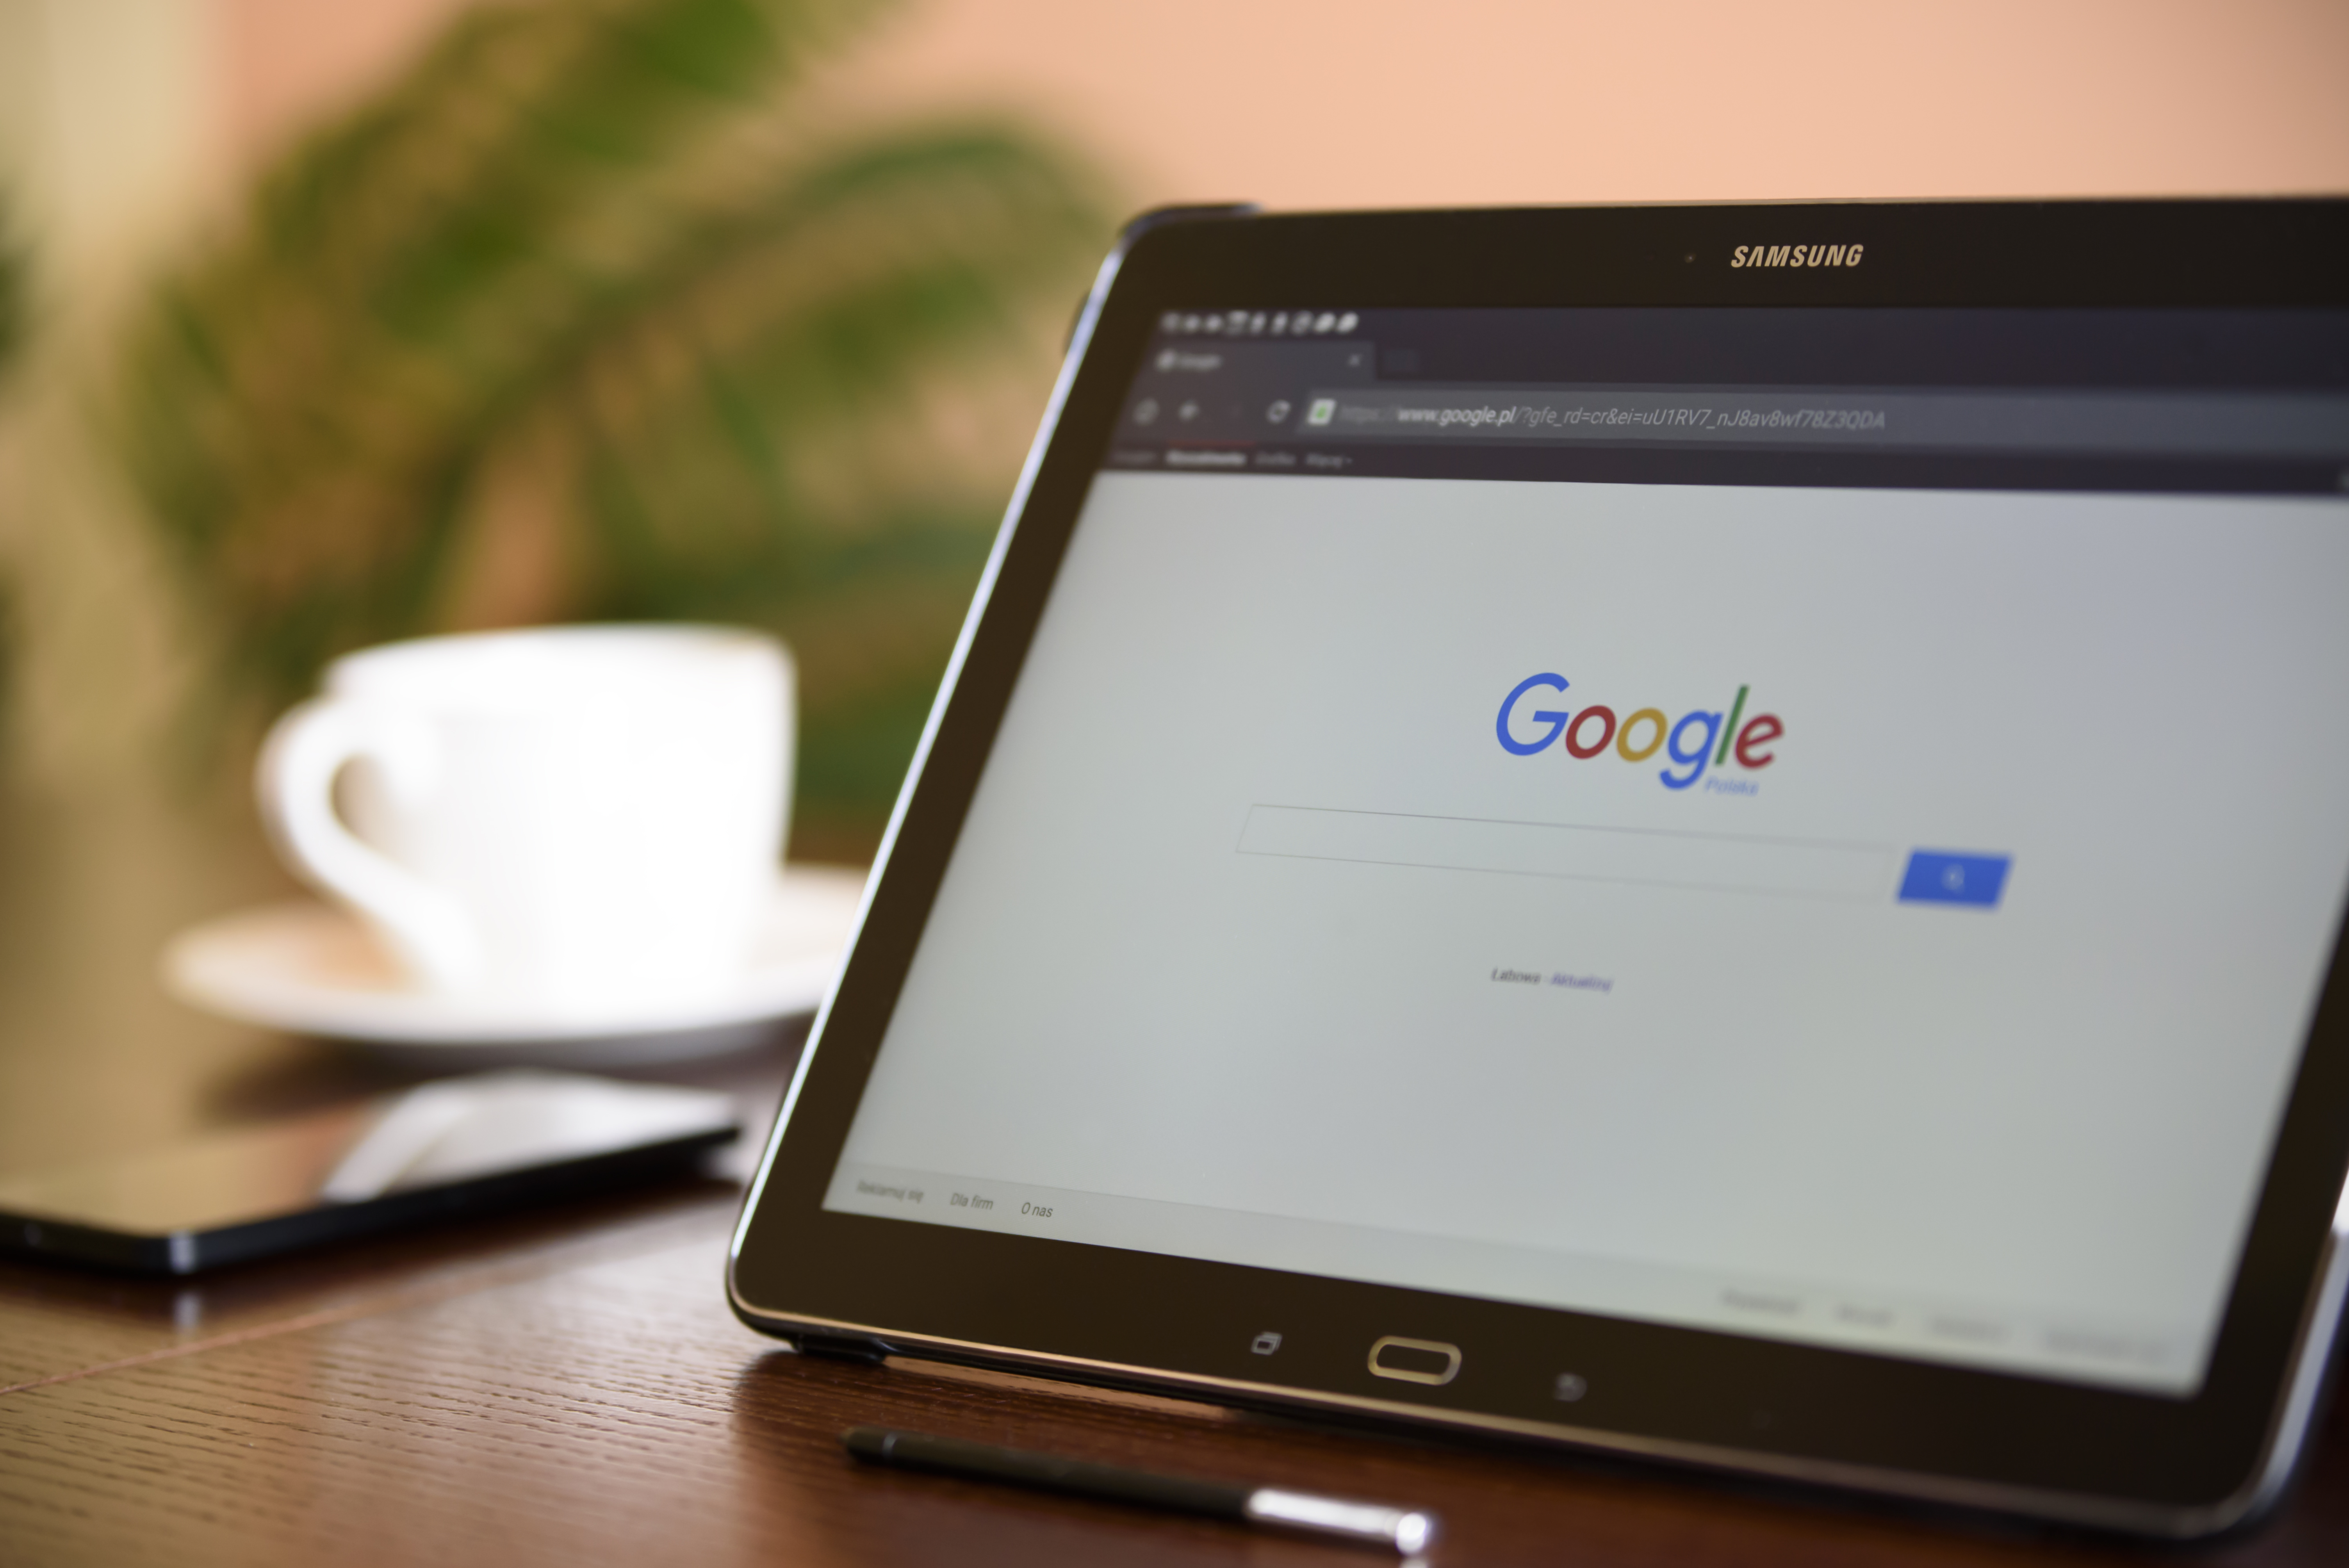 Google Products Top Search Results 91 Per Cent of the Time